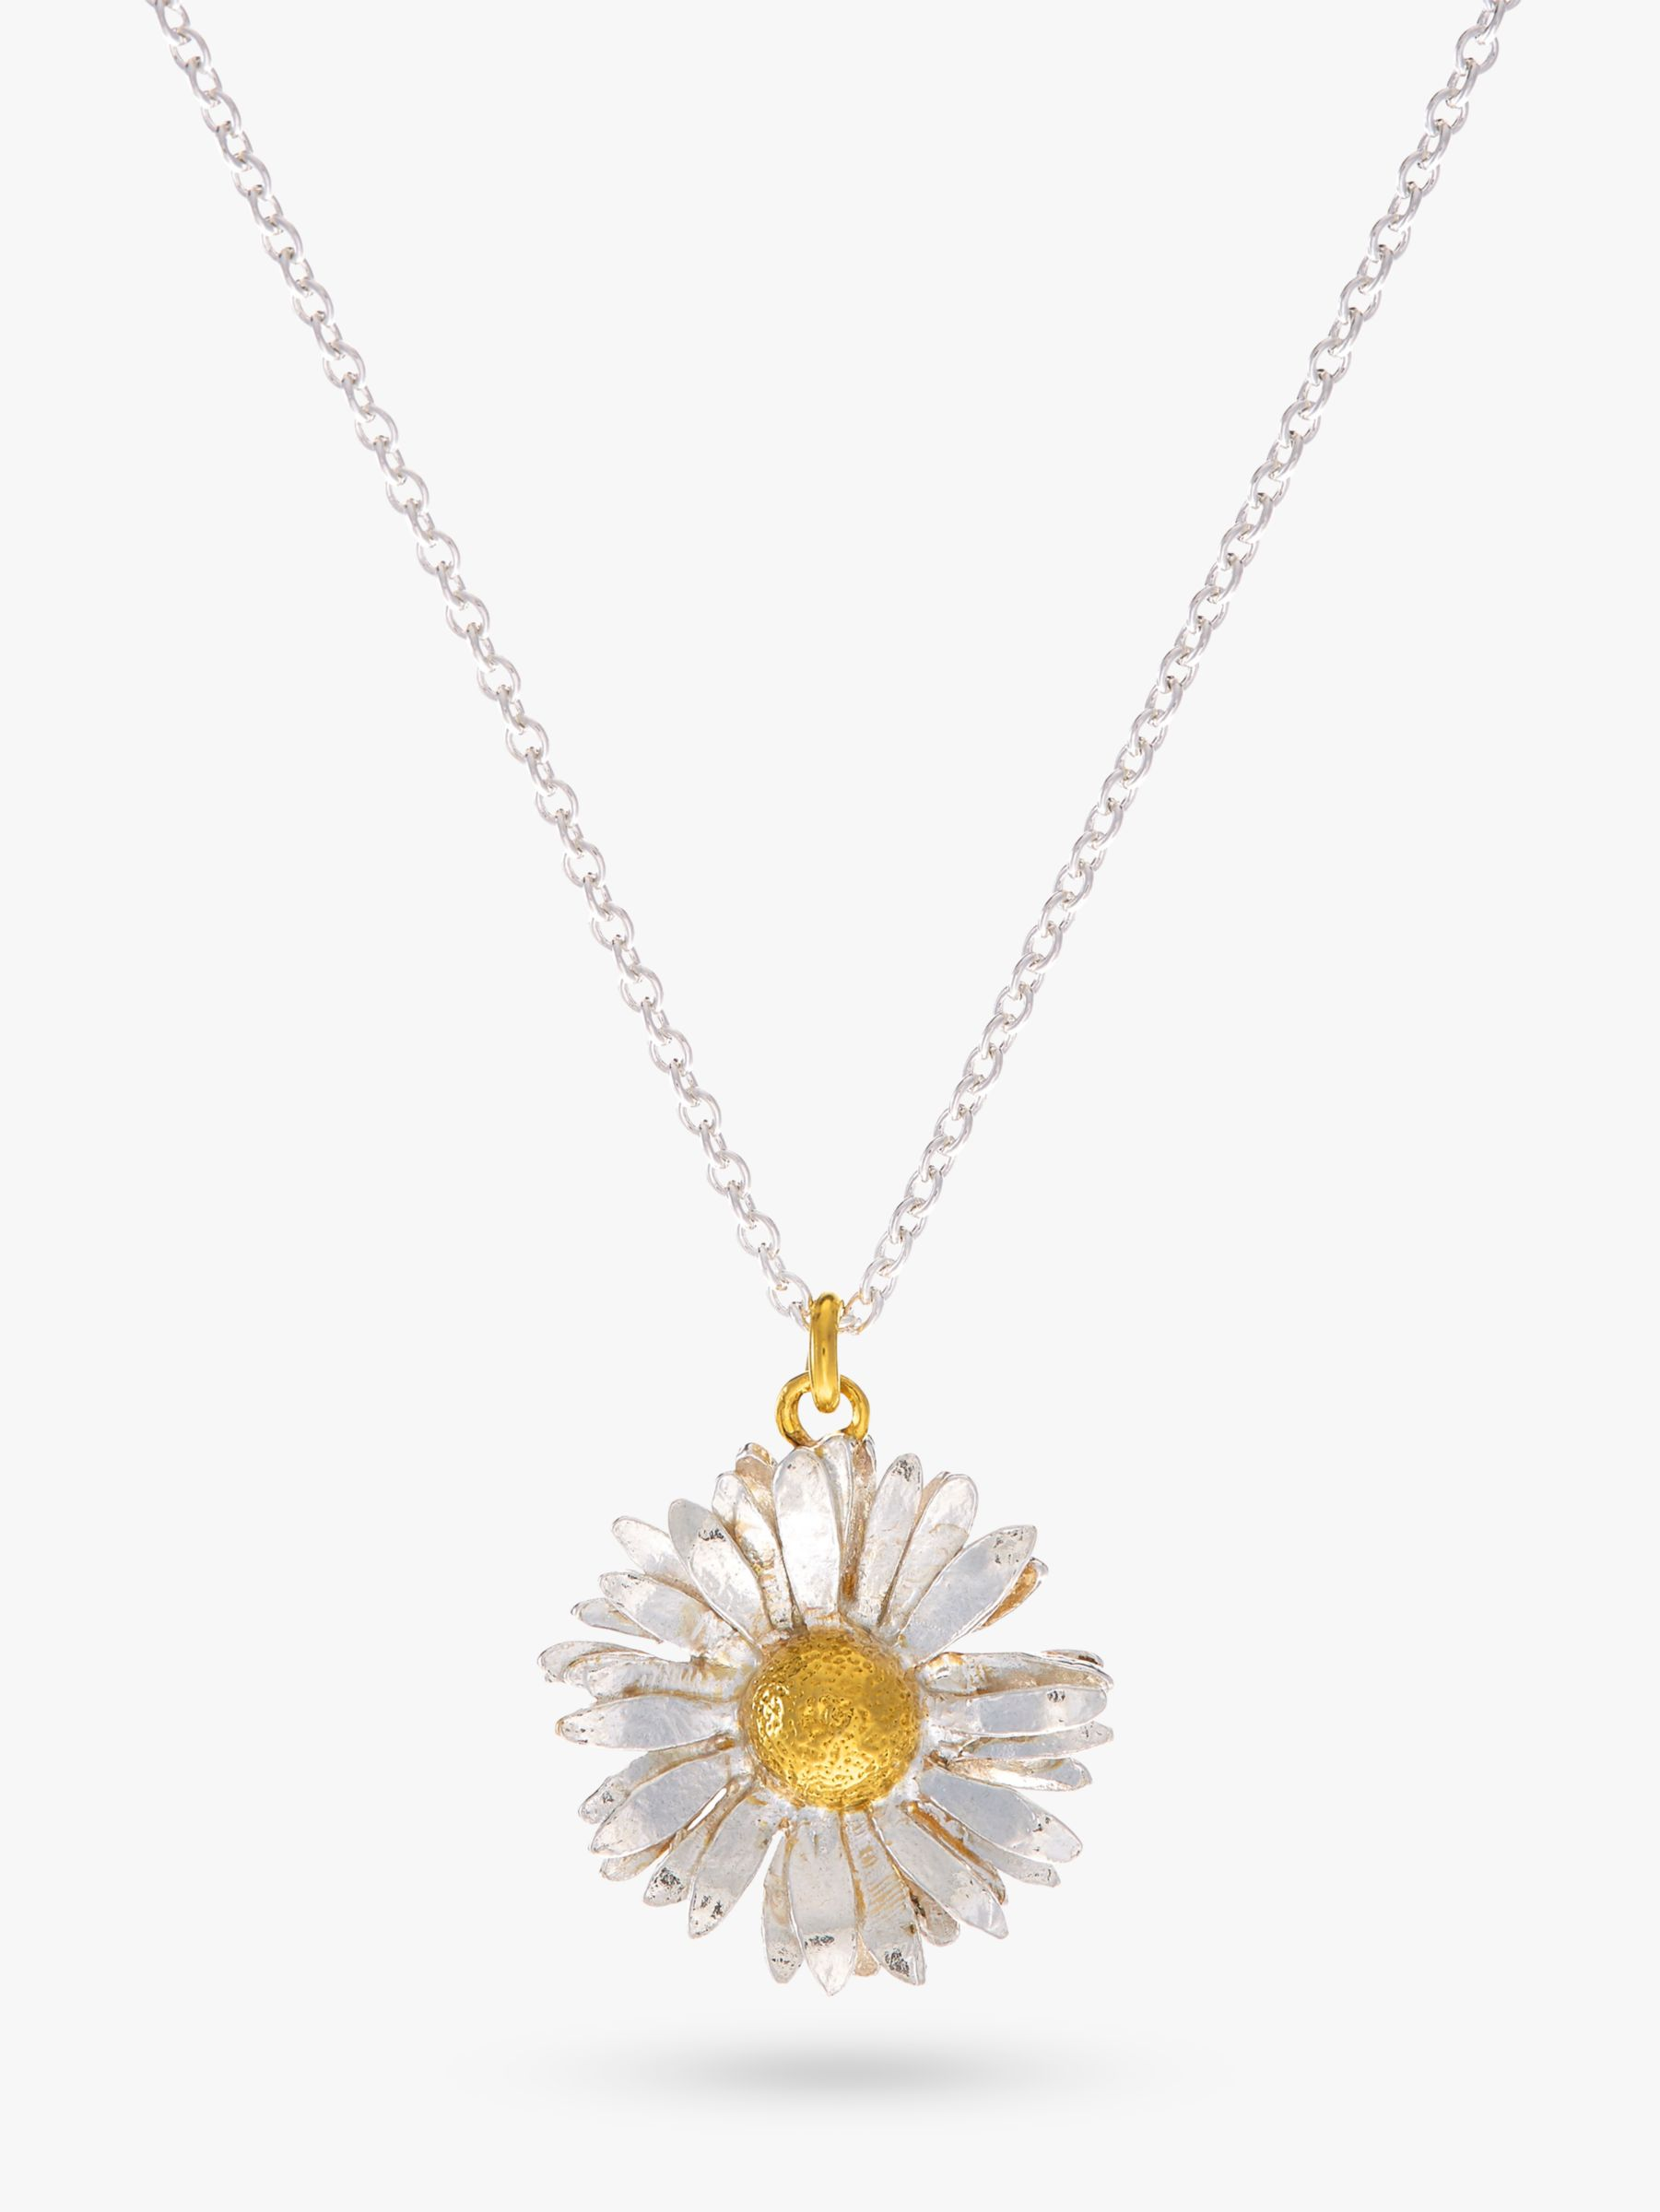 daisy thimble innocence shop also the days and love chains summer chain laura seen necklace symbolises purity countryfile evoke as making daisies pins memories category gold product on a loyal long of stick no childhood vintage